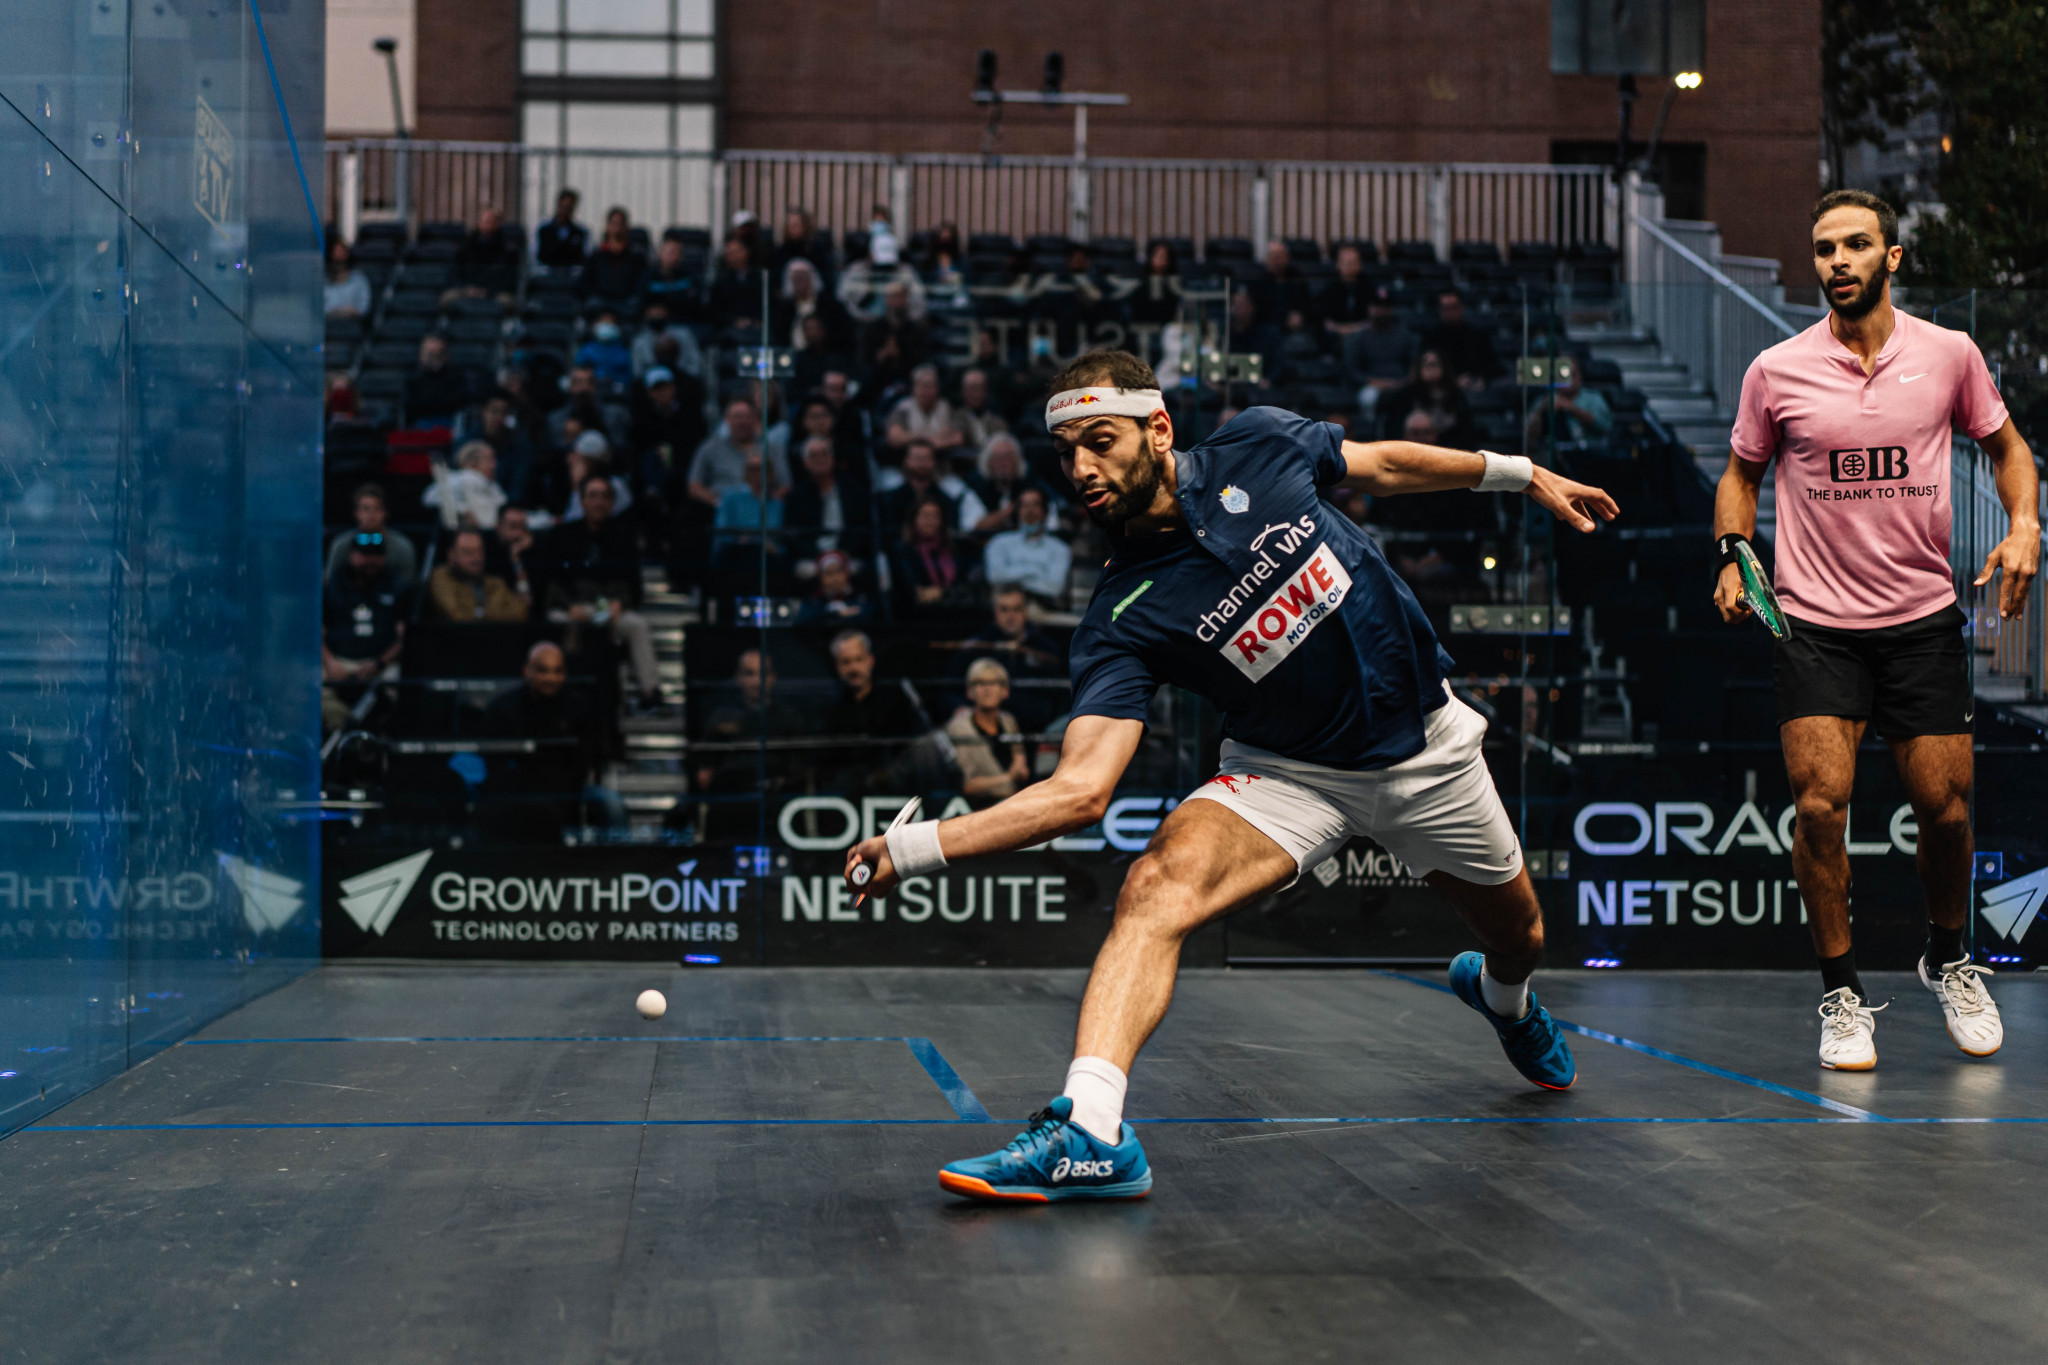 Mohamed ElShorbagy comes from behind to win Oracle Netsuite Open opener